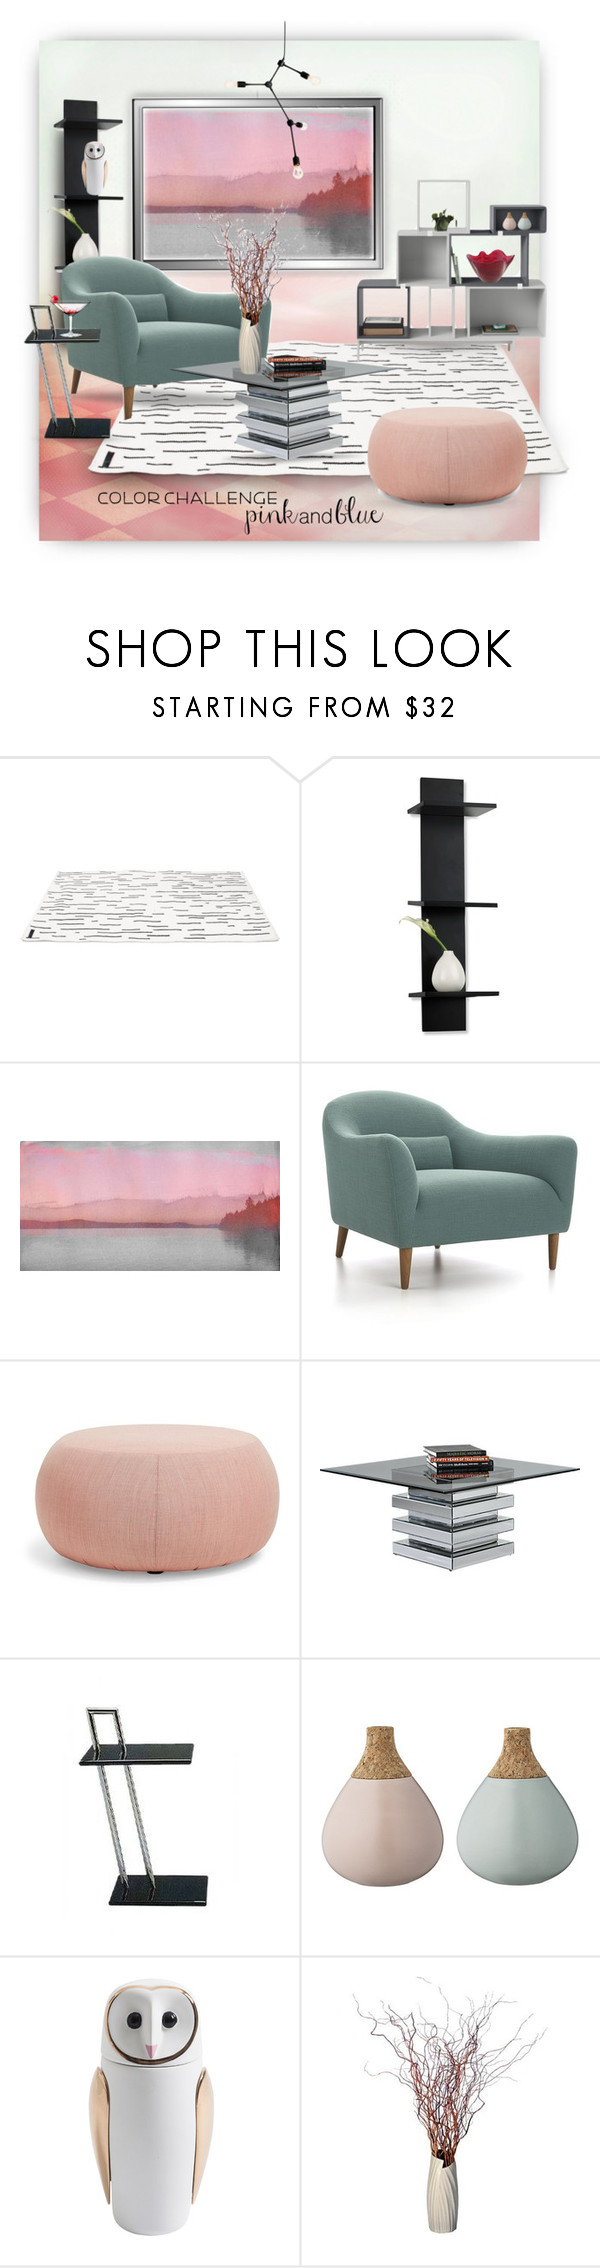 """""""Color Challenge: Pink and Blue"""" by ysmn-pan ❤ liked on Polyvore featuring interior, interiors, interior design, home, home decor, interior decorating, Muuto, Mikasa, Parvez Taj and Crate and Barrel"""